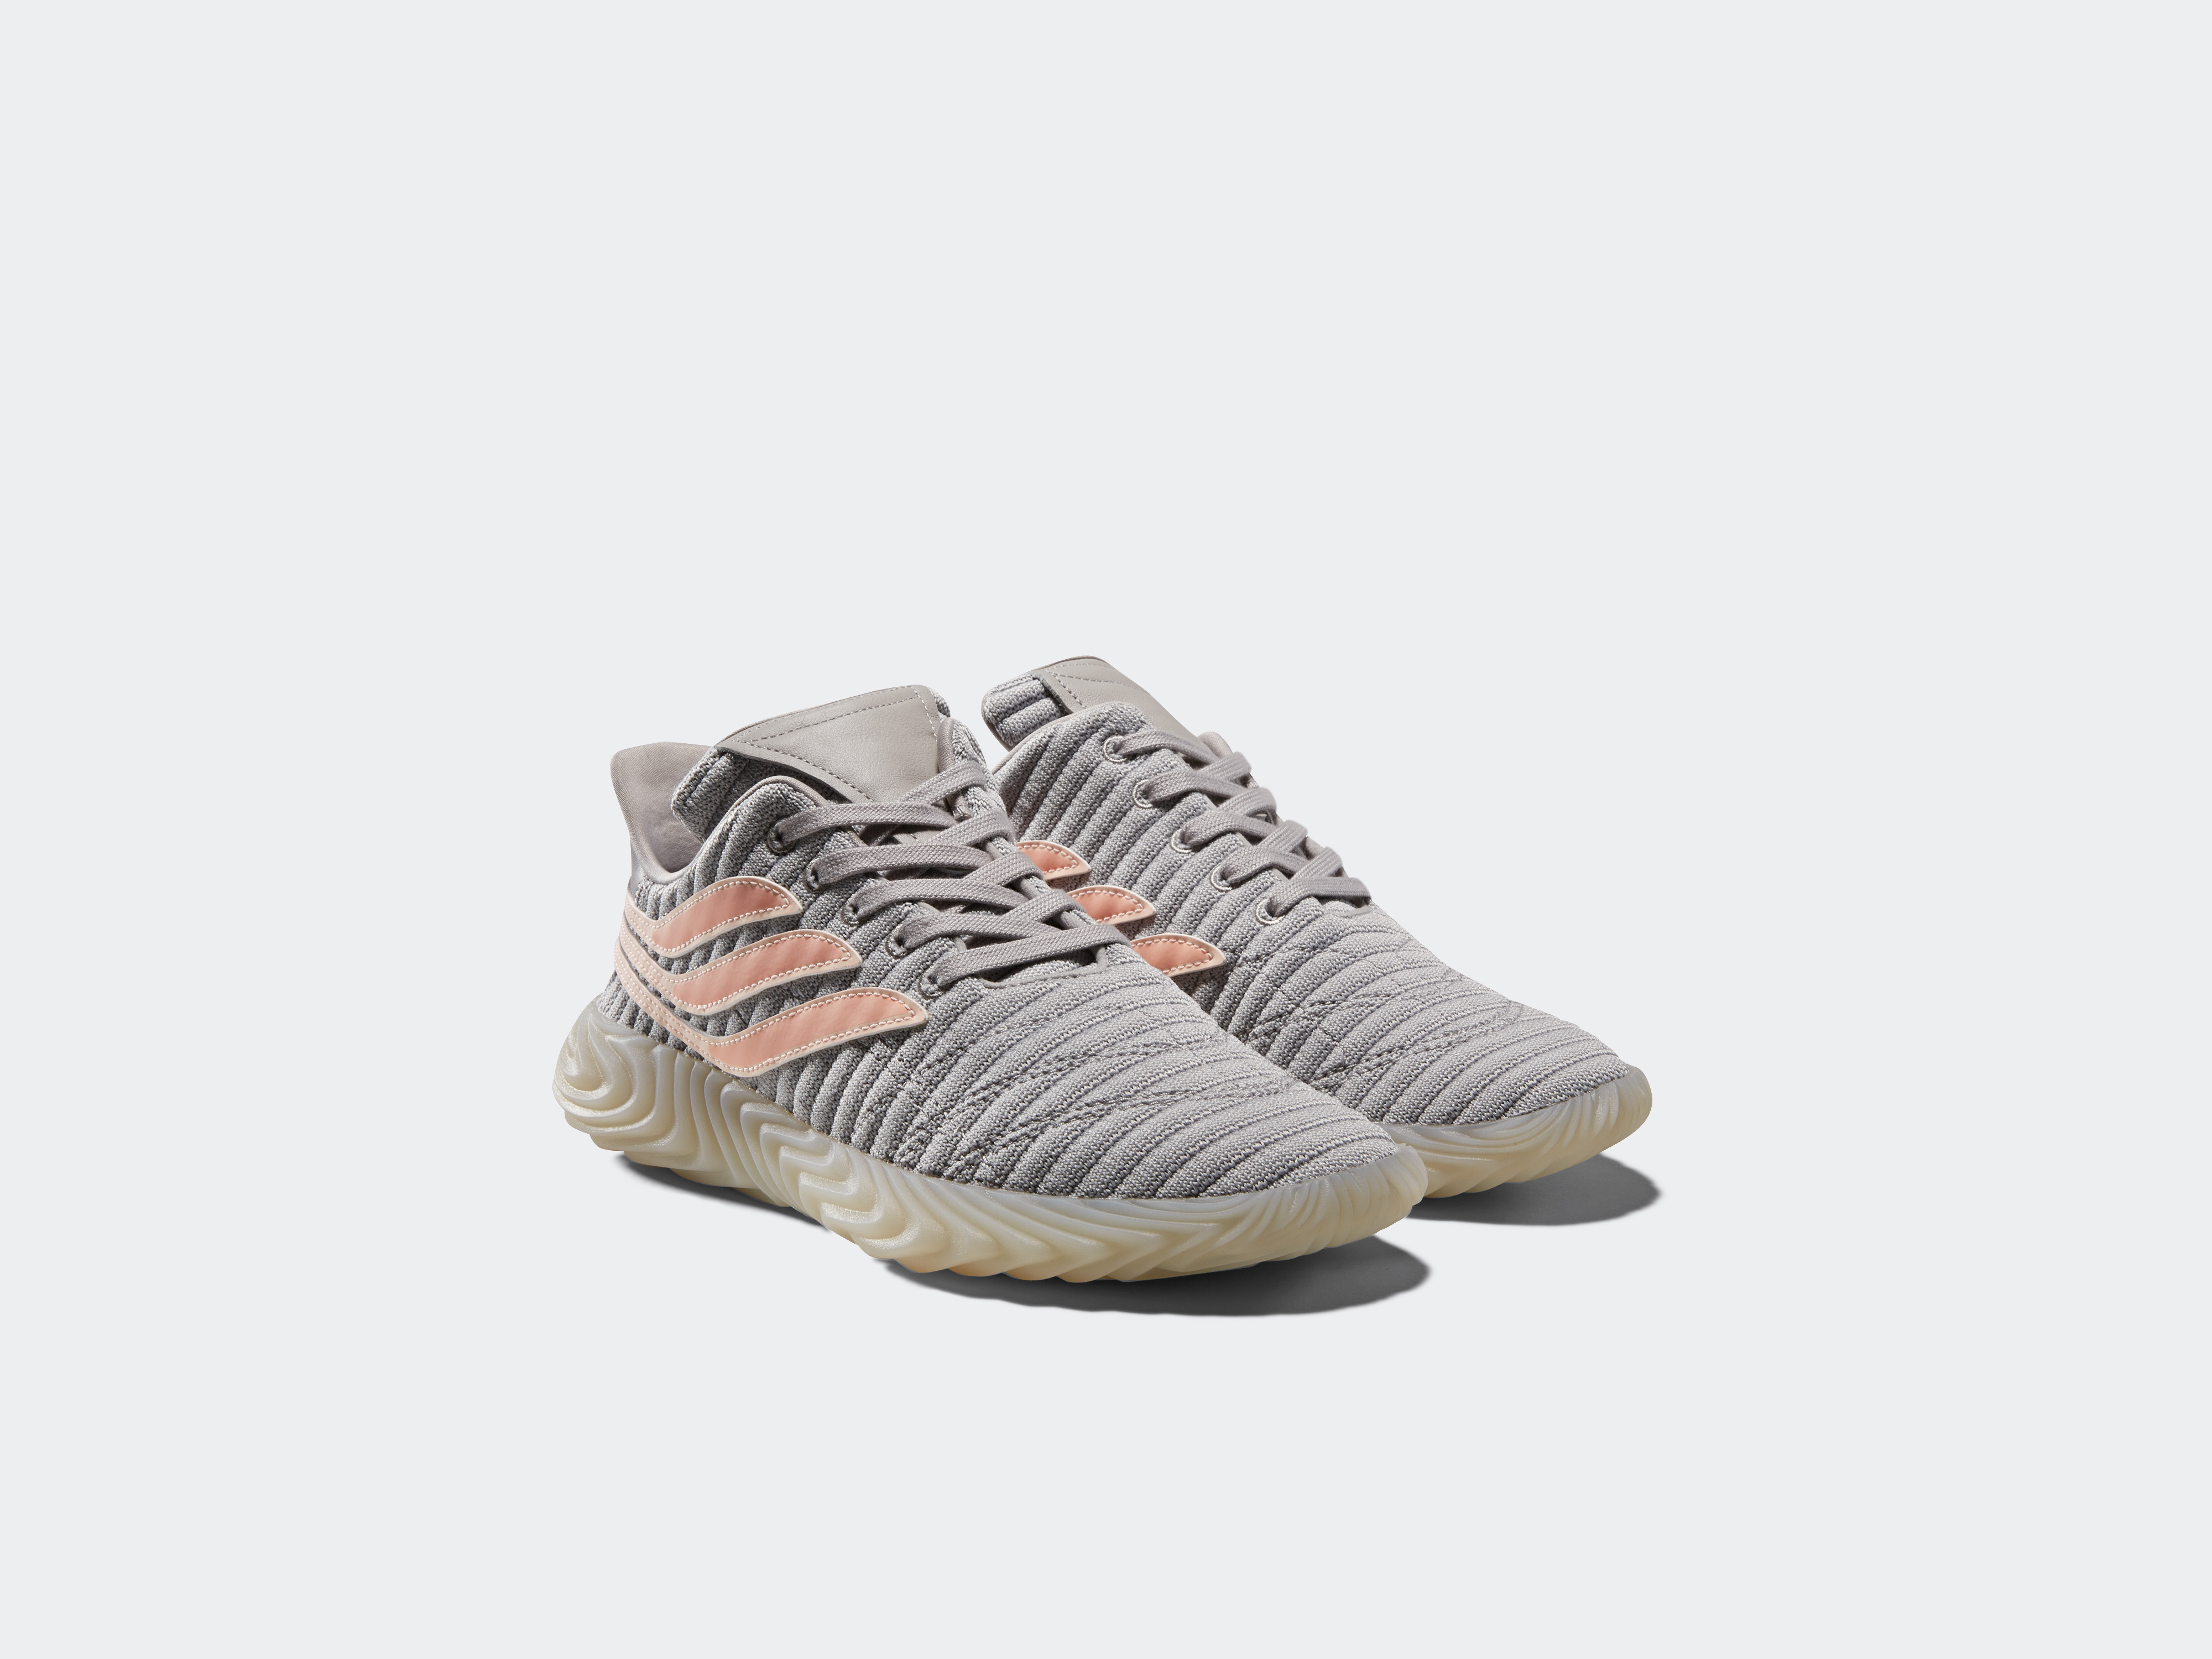 adidas sobakov Archives - WearTesters